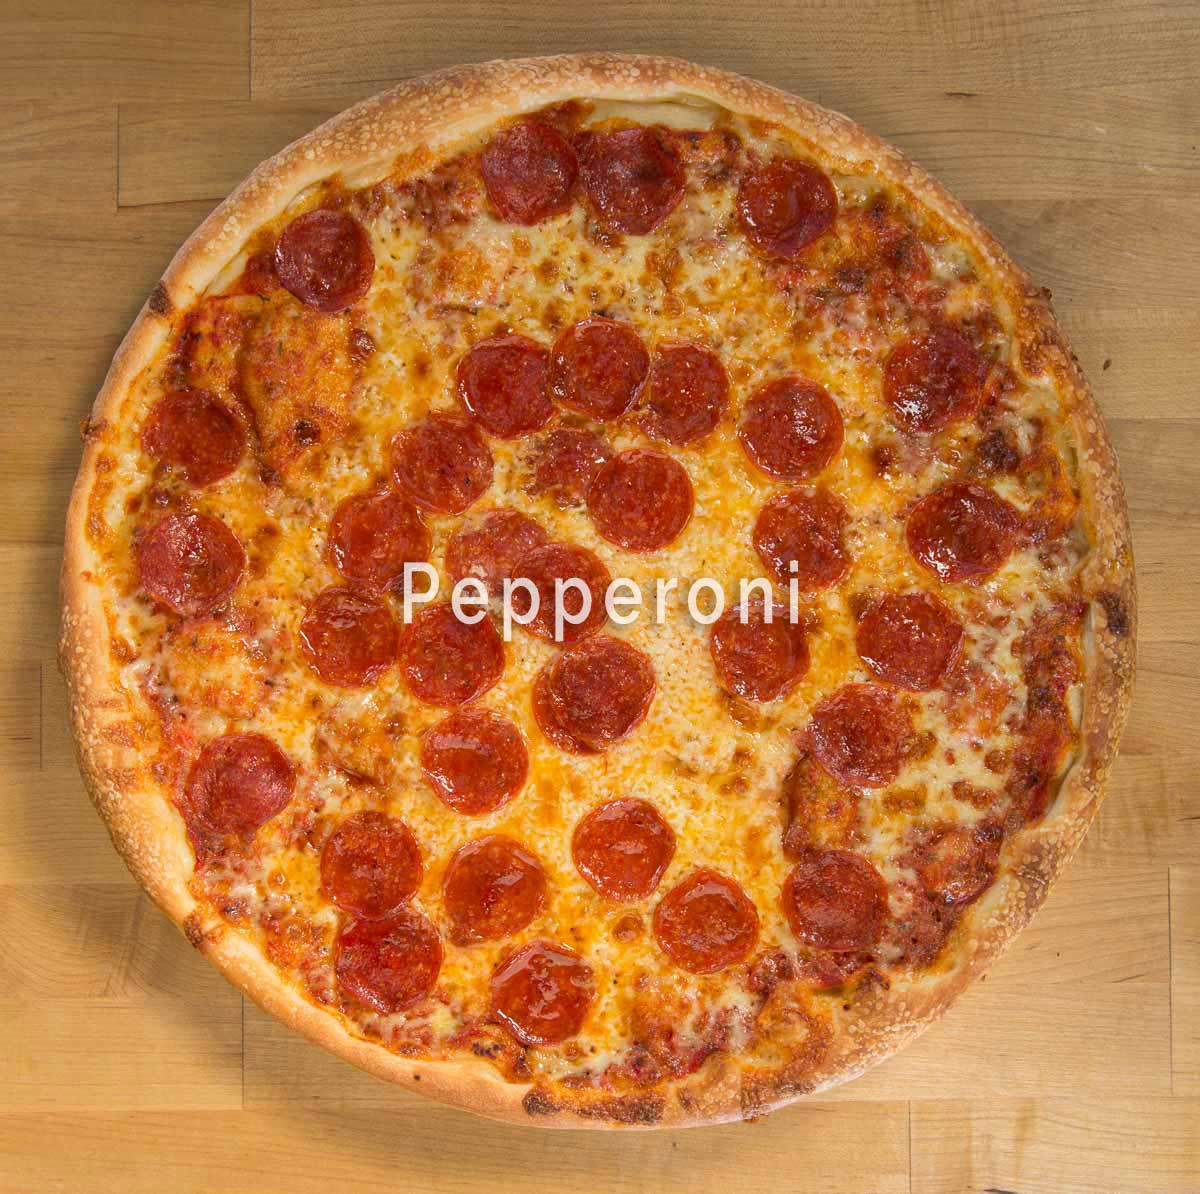 Pepperoni_Labeled.jpg